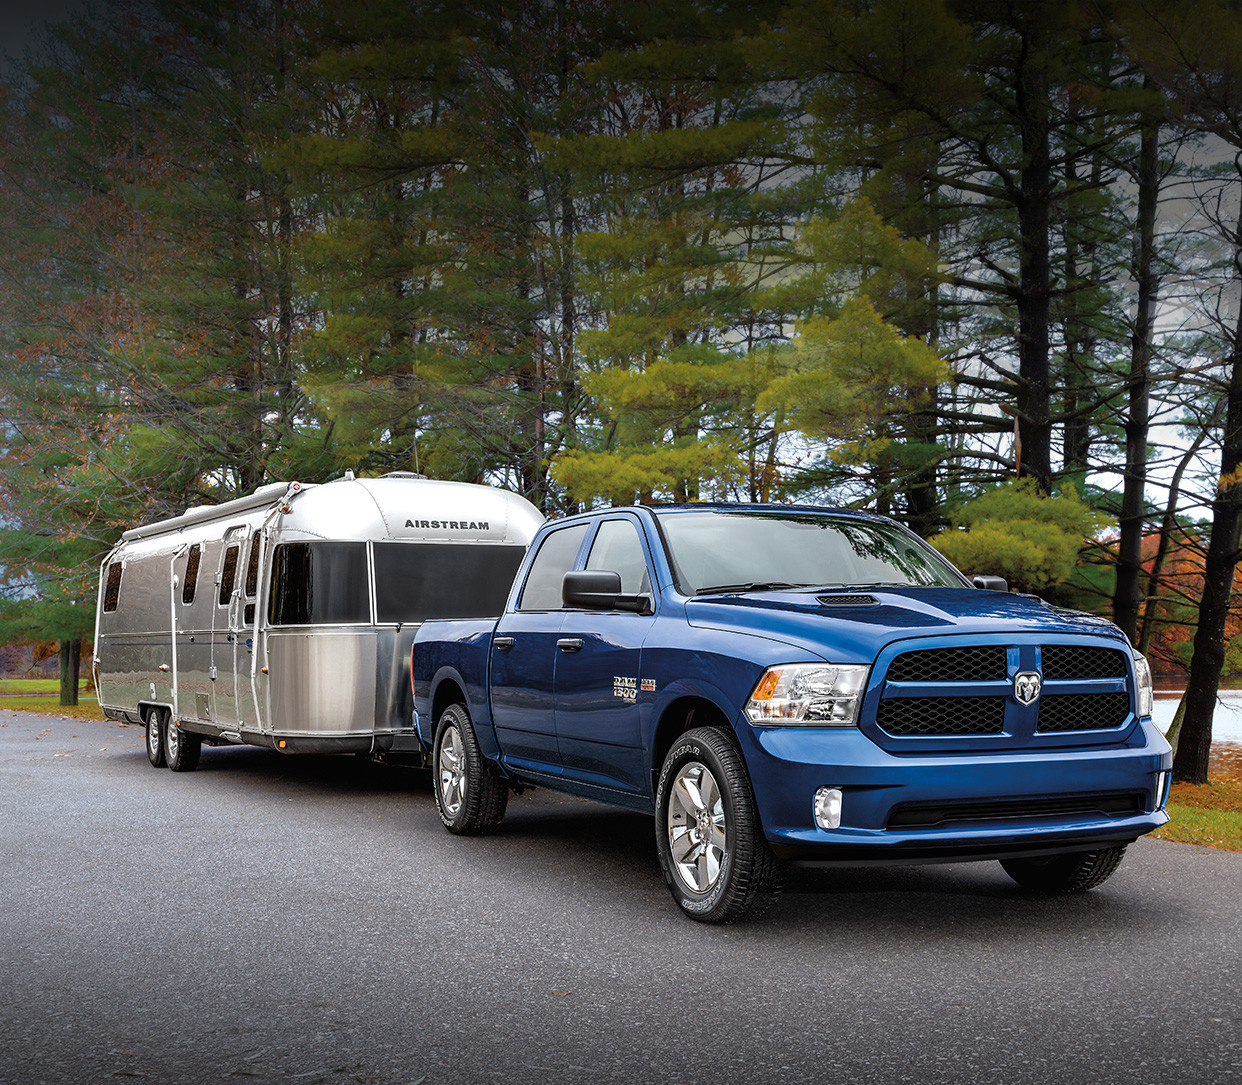 Front view of the blue 2019 Ram 1500 Classic towing a camping trailer in a forest